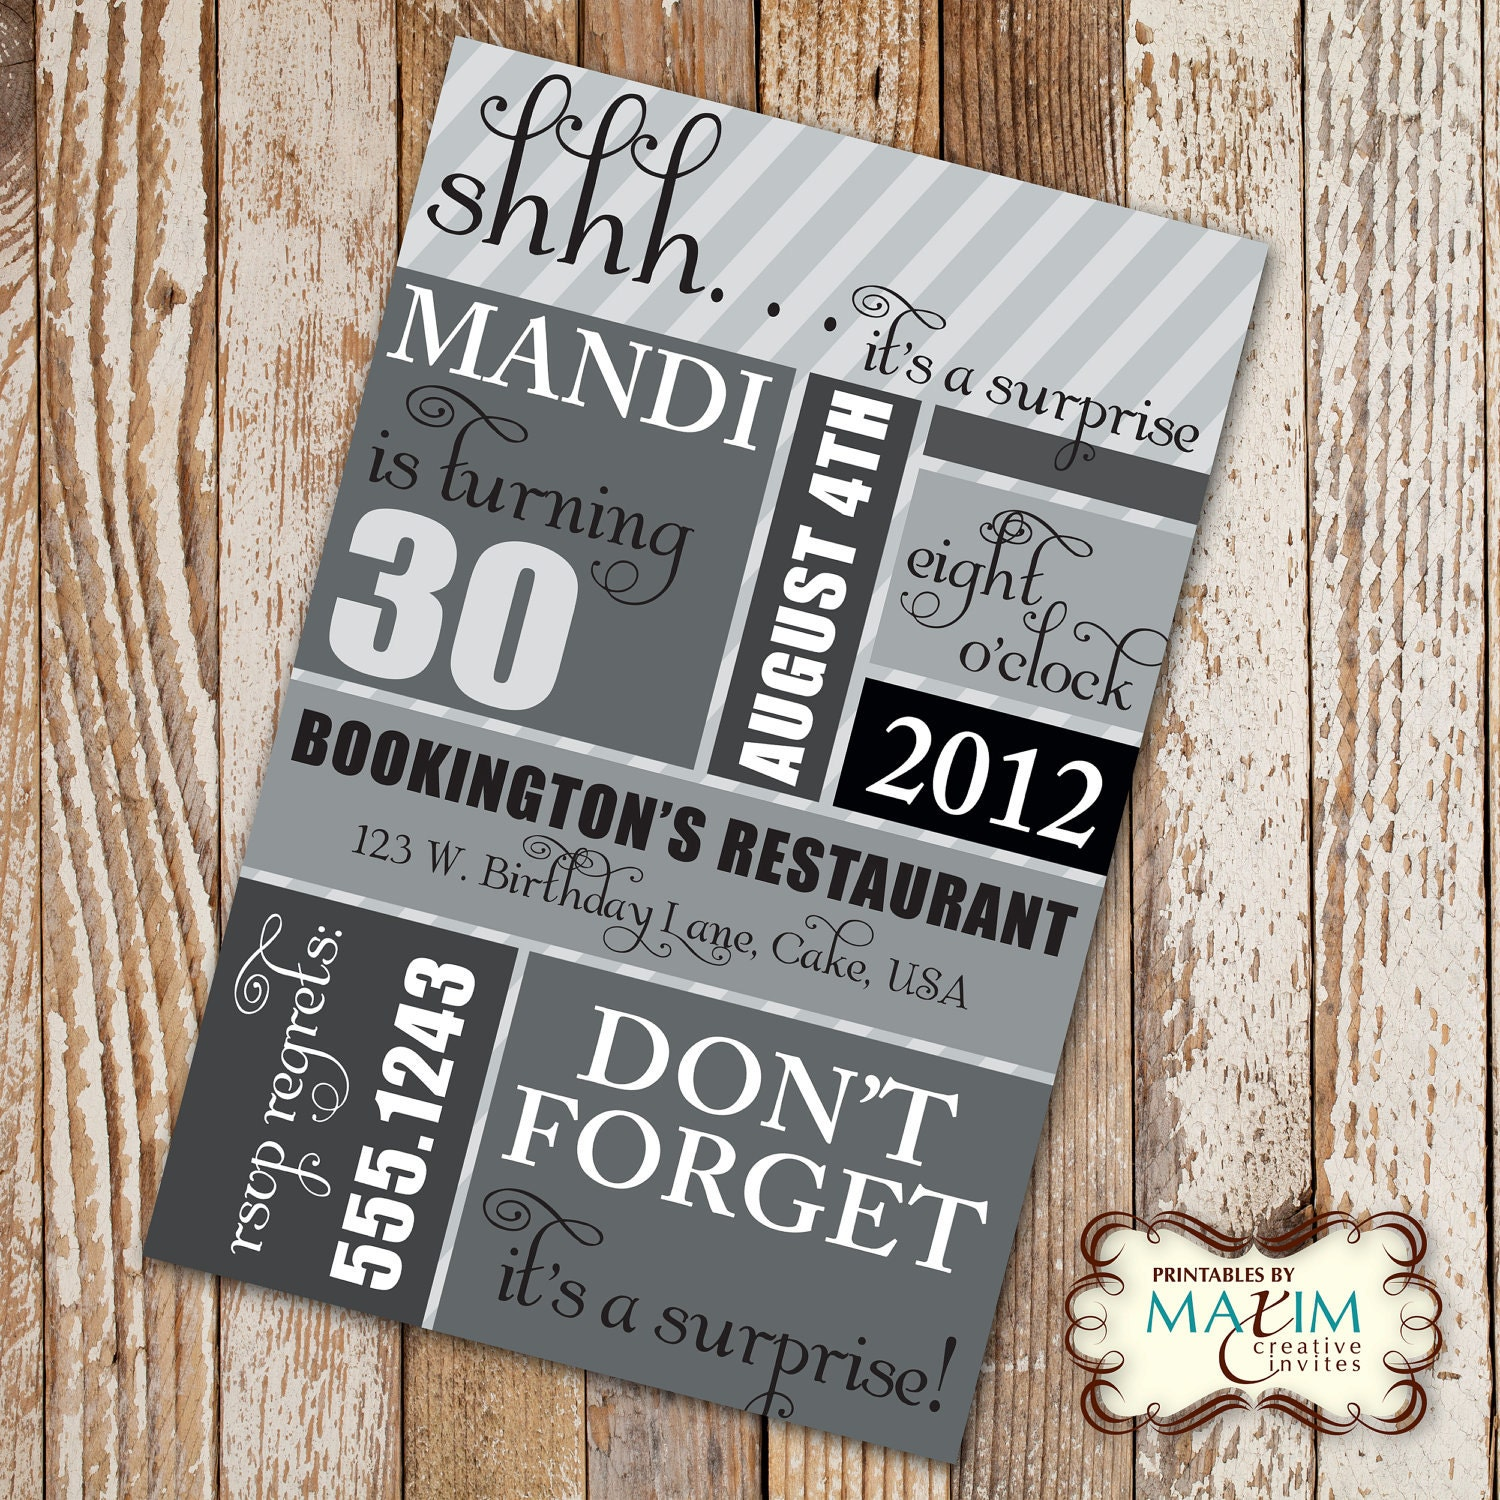 DIY Printable Invitation Surprise Birthday Party Birthday